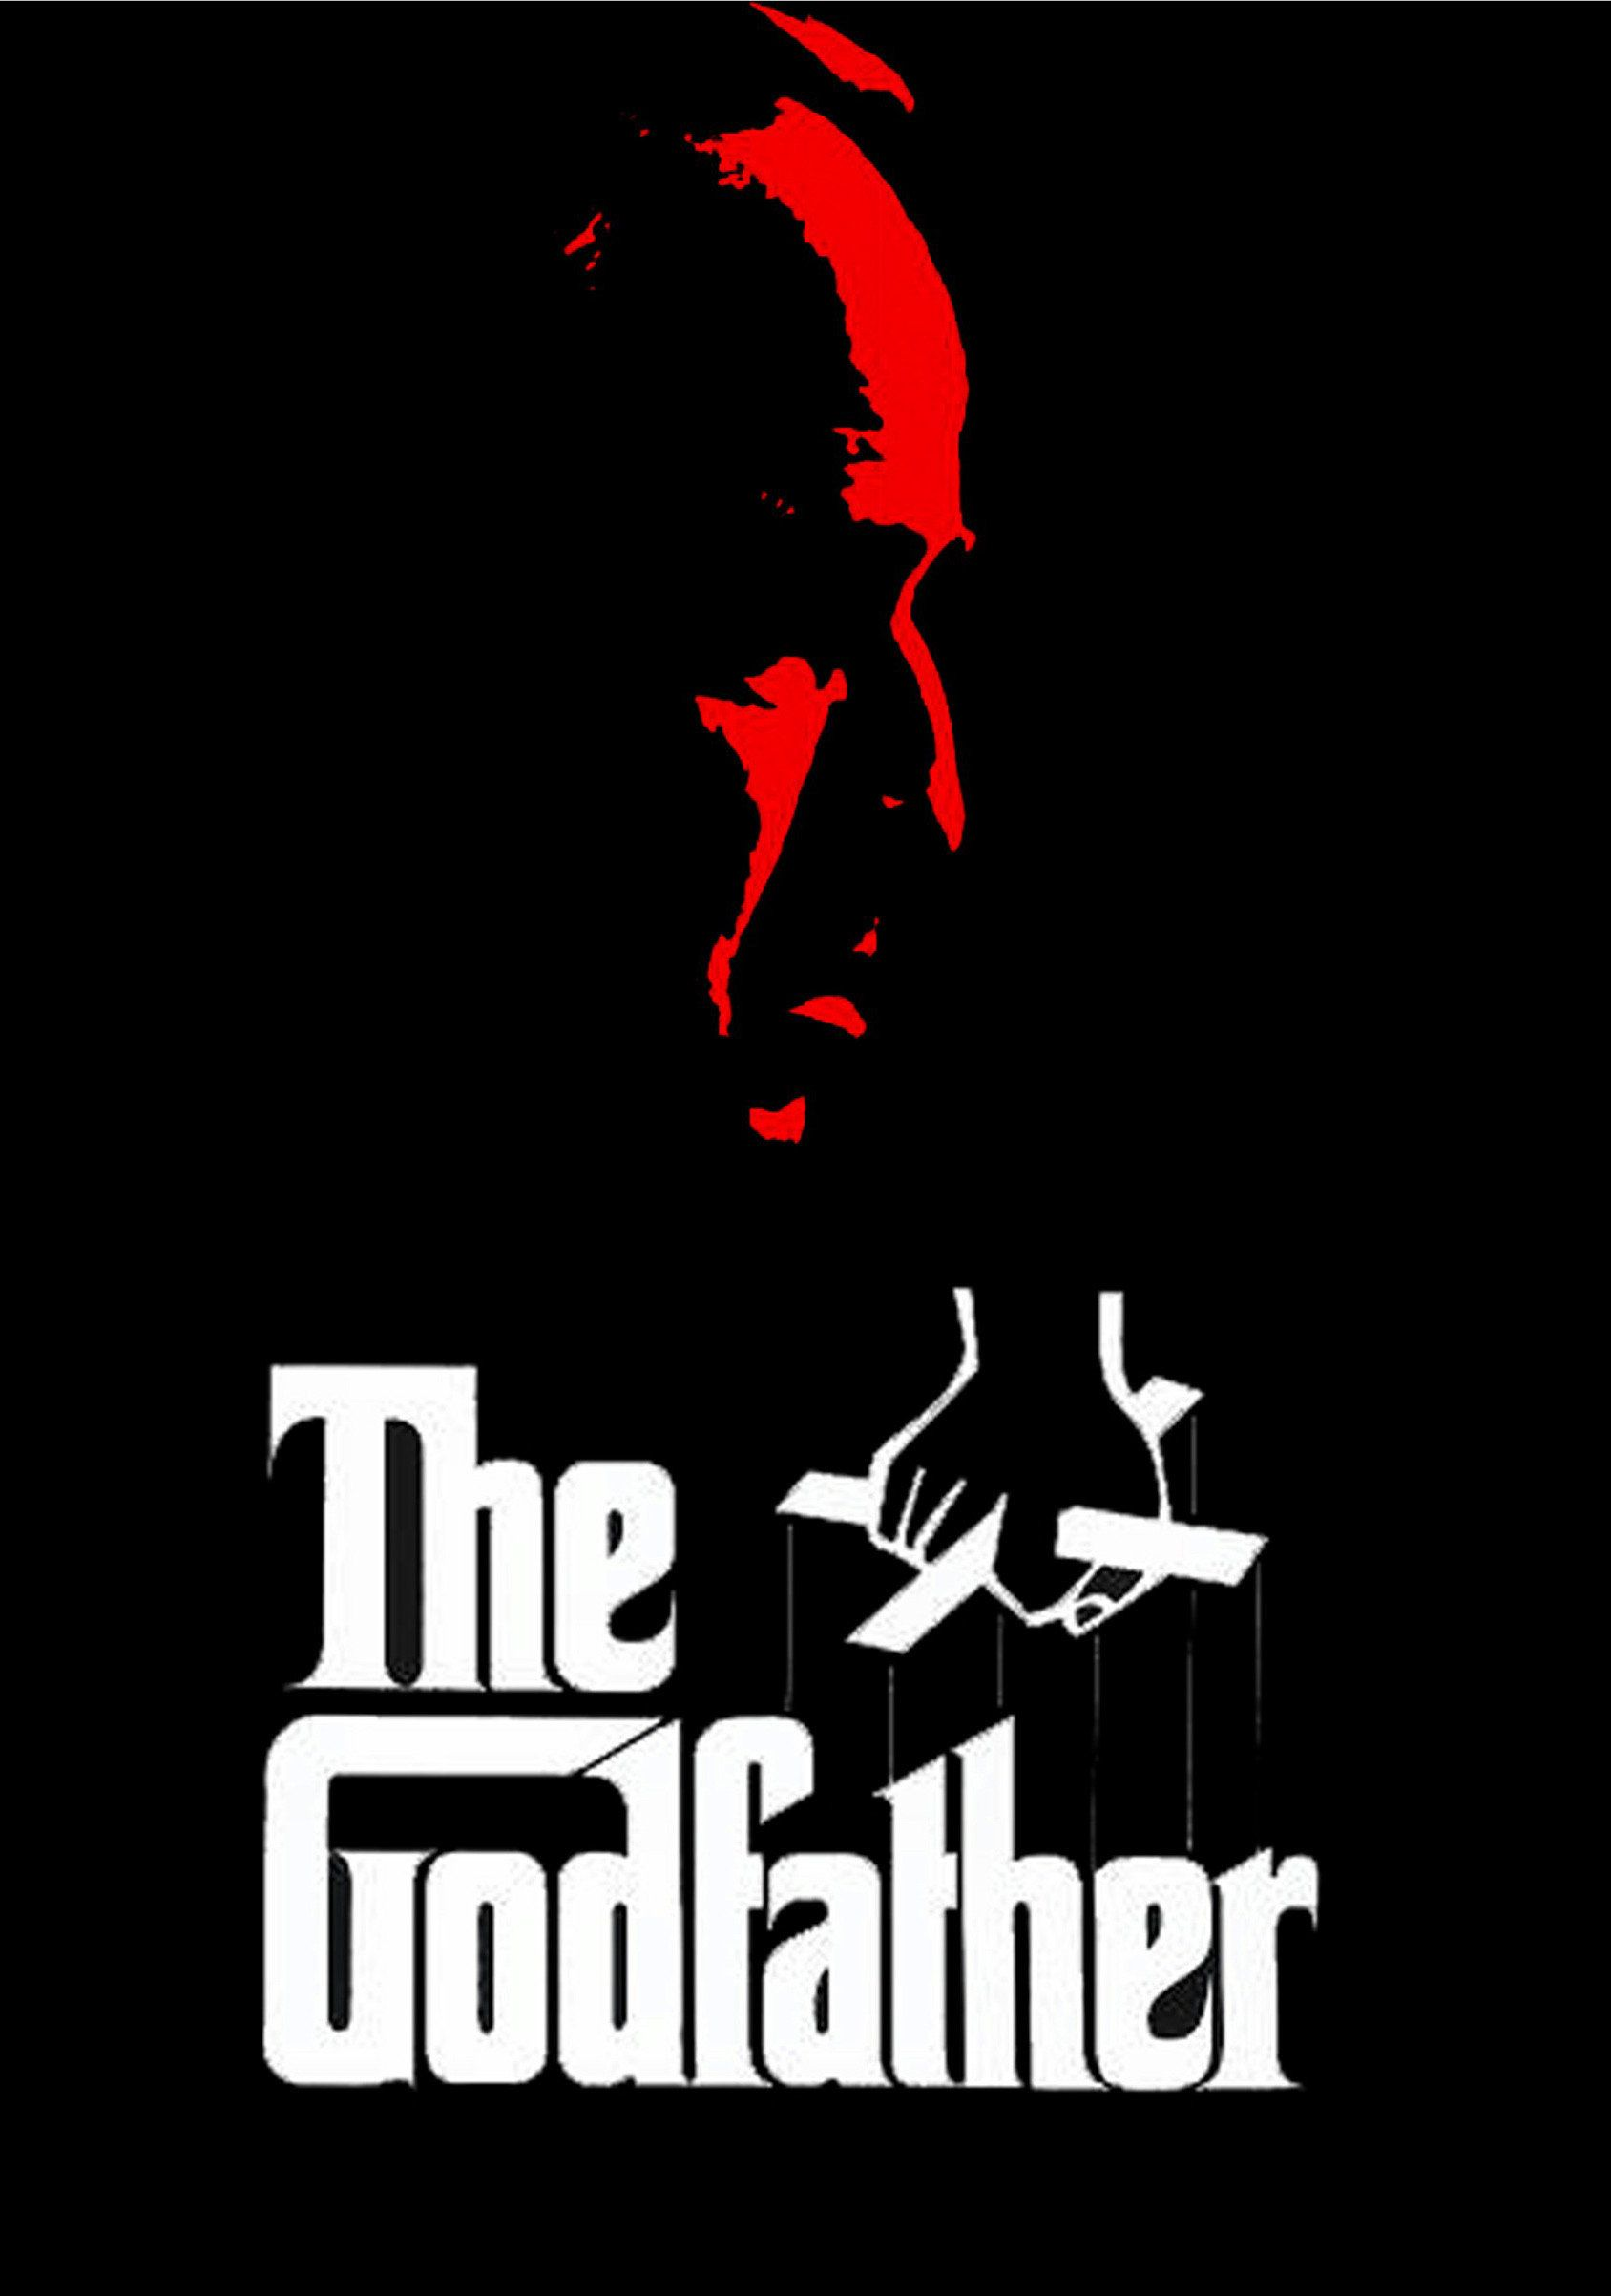 The Godfather Godfather Movie Old Movie Posters The Godfather